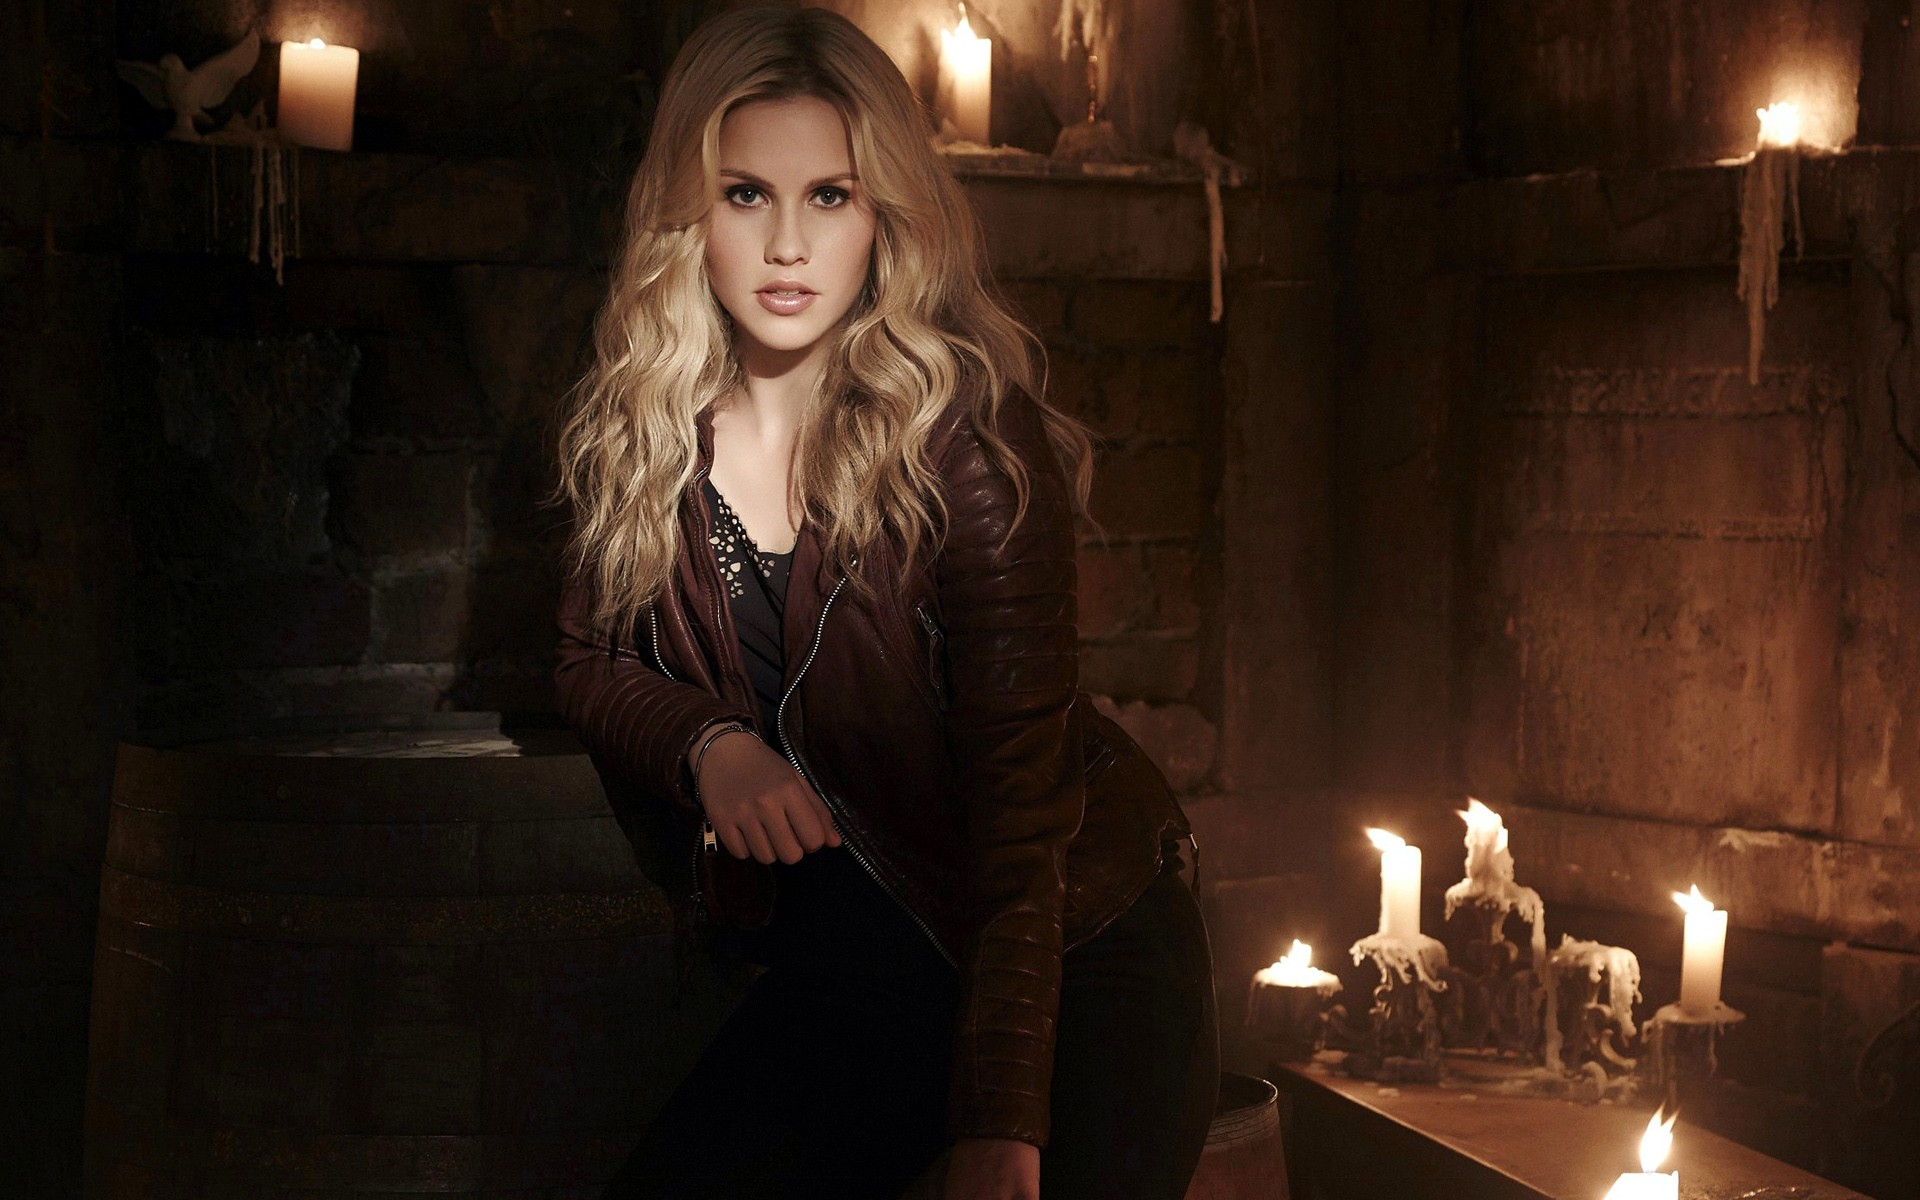 claire holt desktop wallpaper 66978